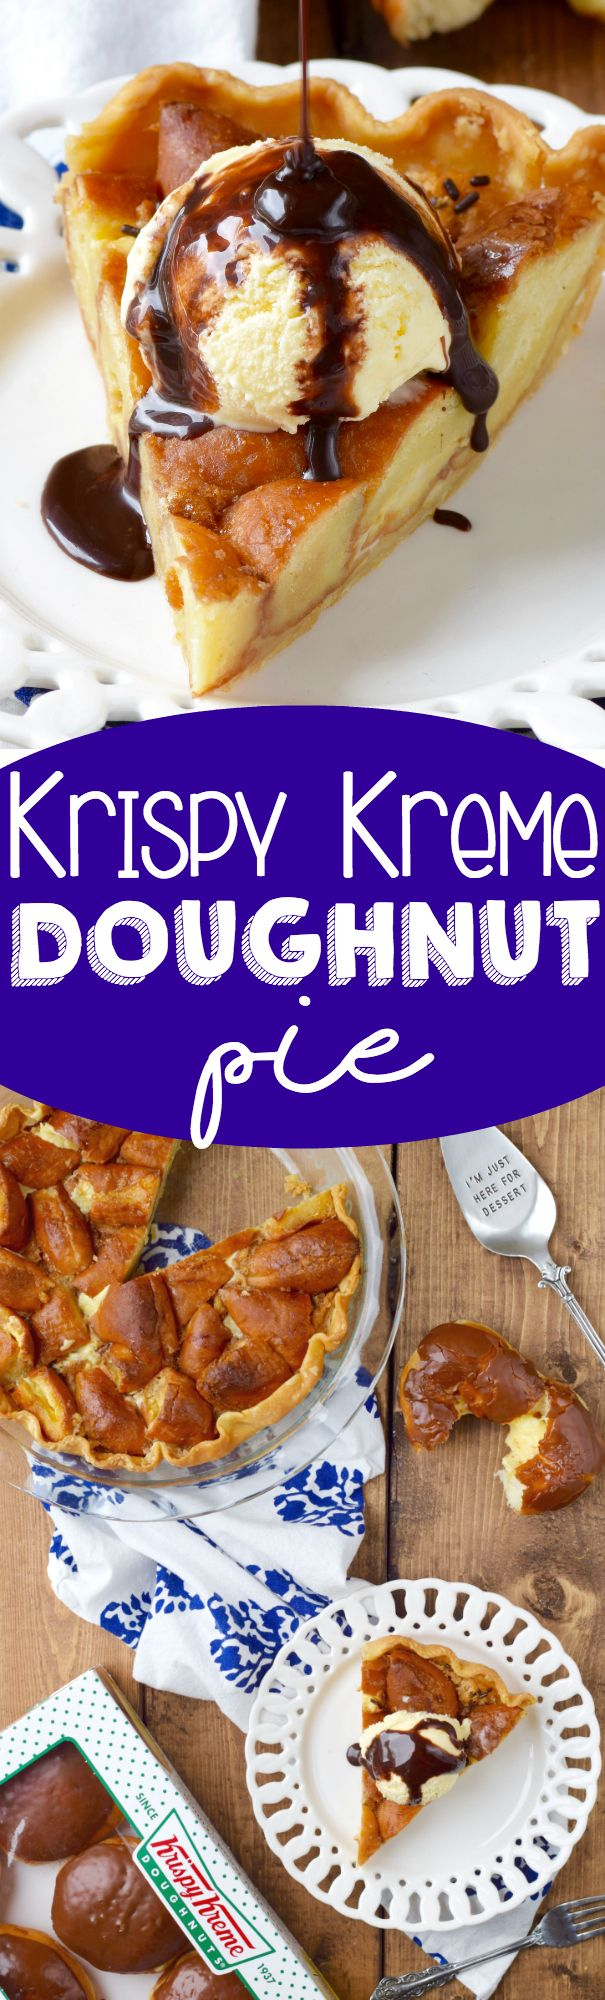 Krispy Kreme Pie! Yup. I made a whole pie out of Krispy Kreme Donuts. You're welcome.